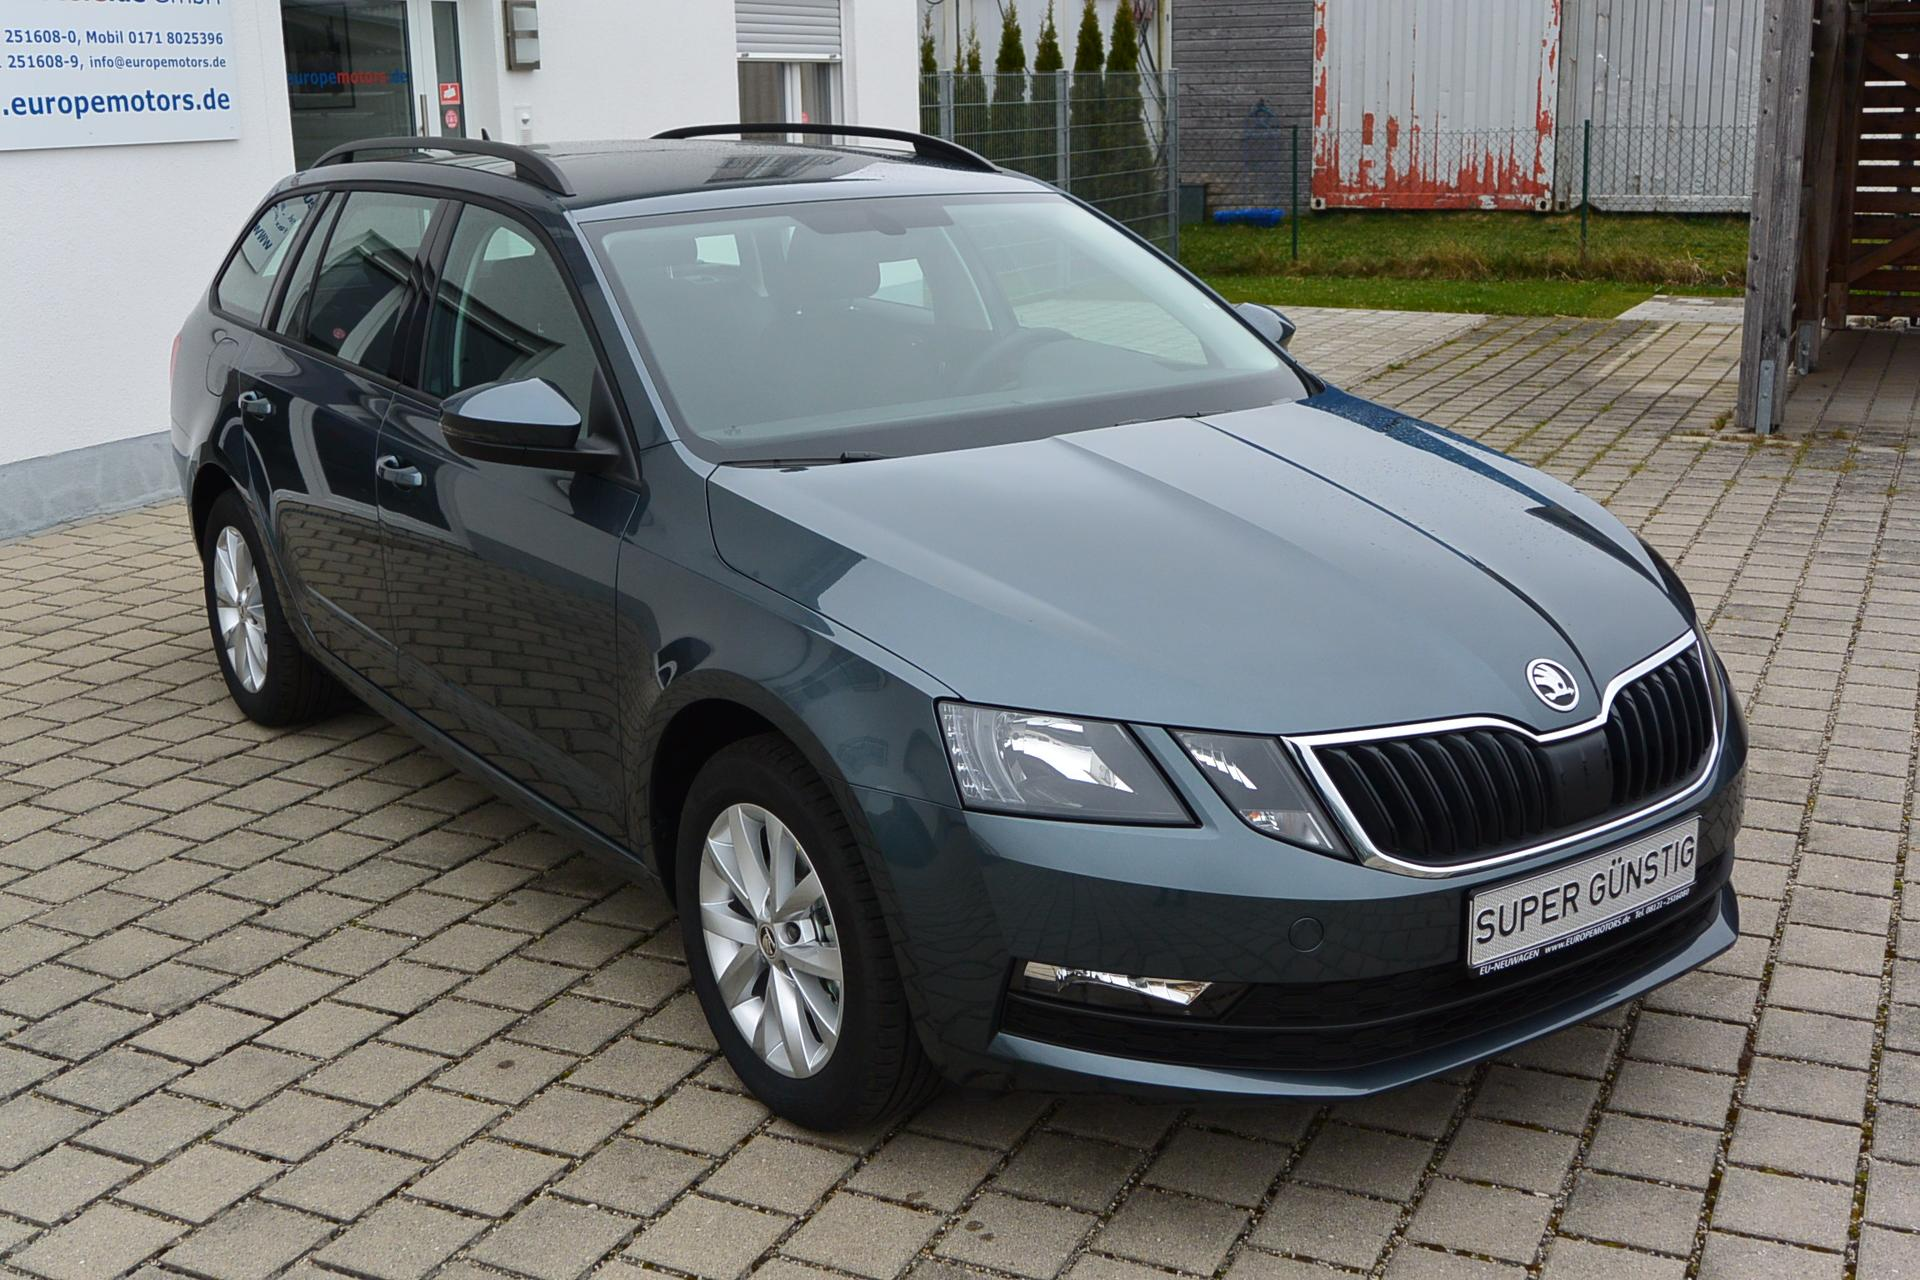 skoda octavia combi style navi full led 1 6 tdi scr dsg 85. Black Bedroom Furniture Sets. Home Design Ideas